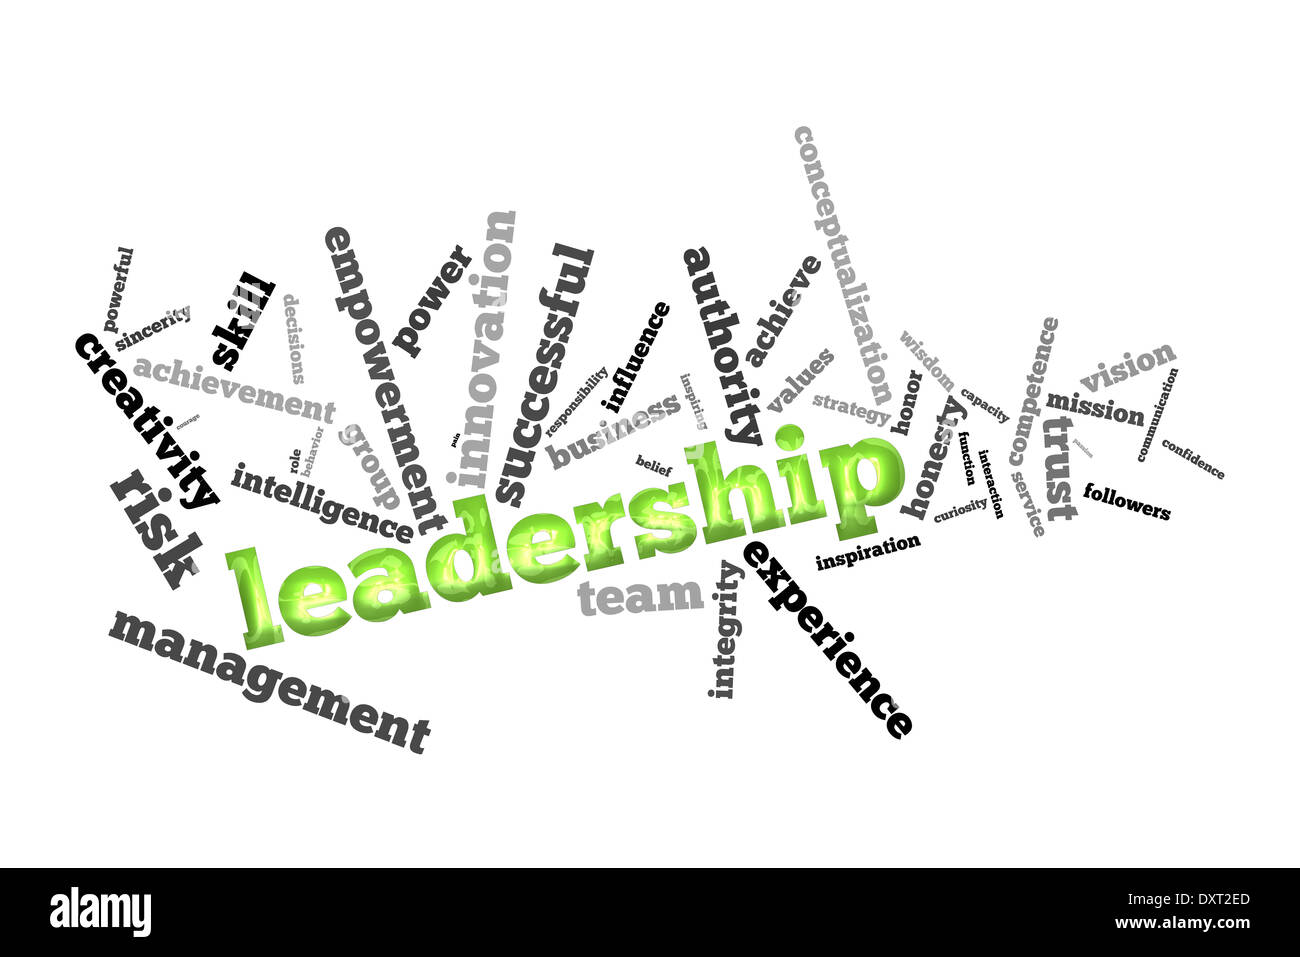 Leadership concept - Stock Image